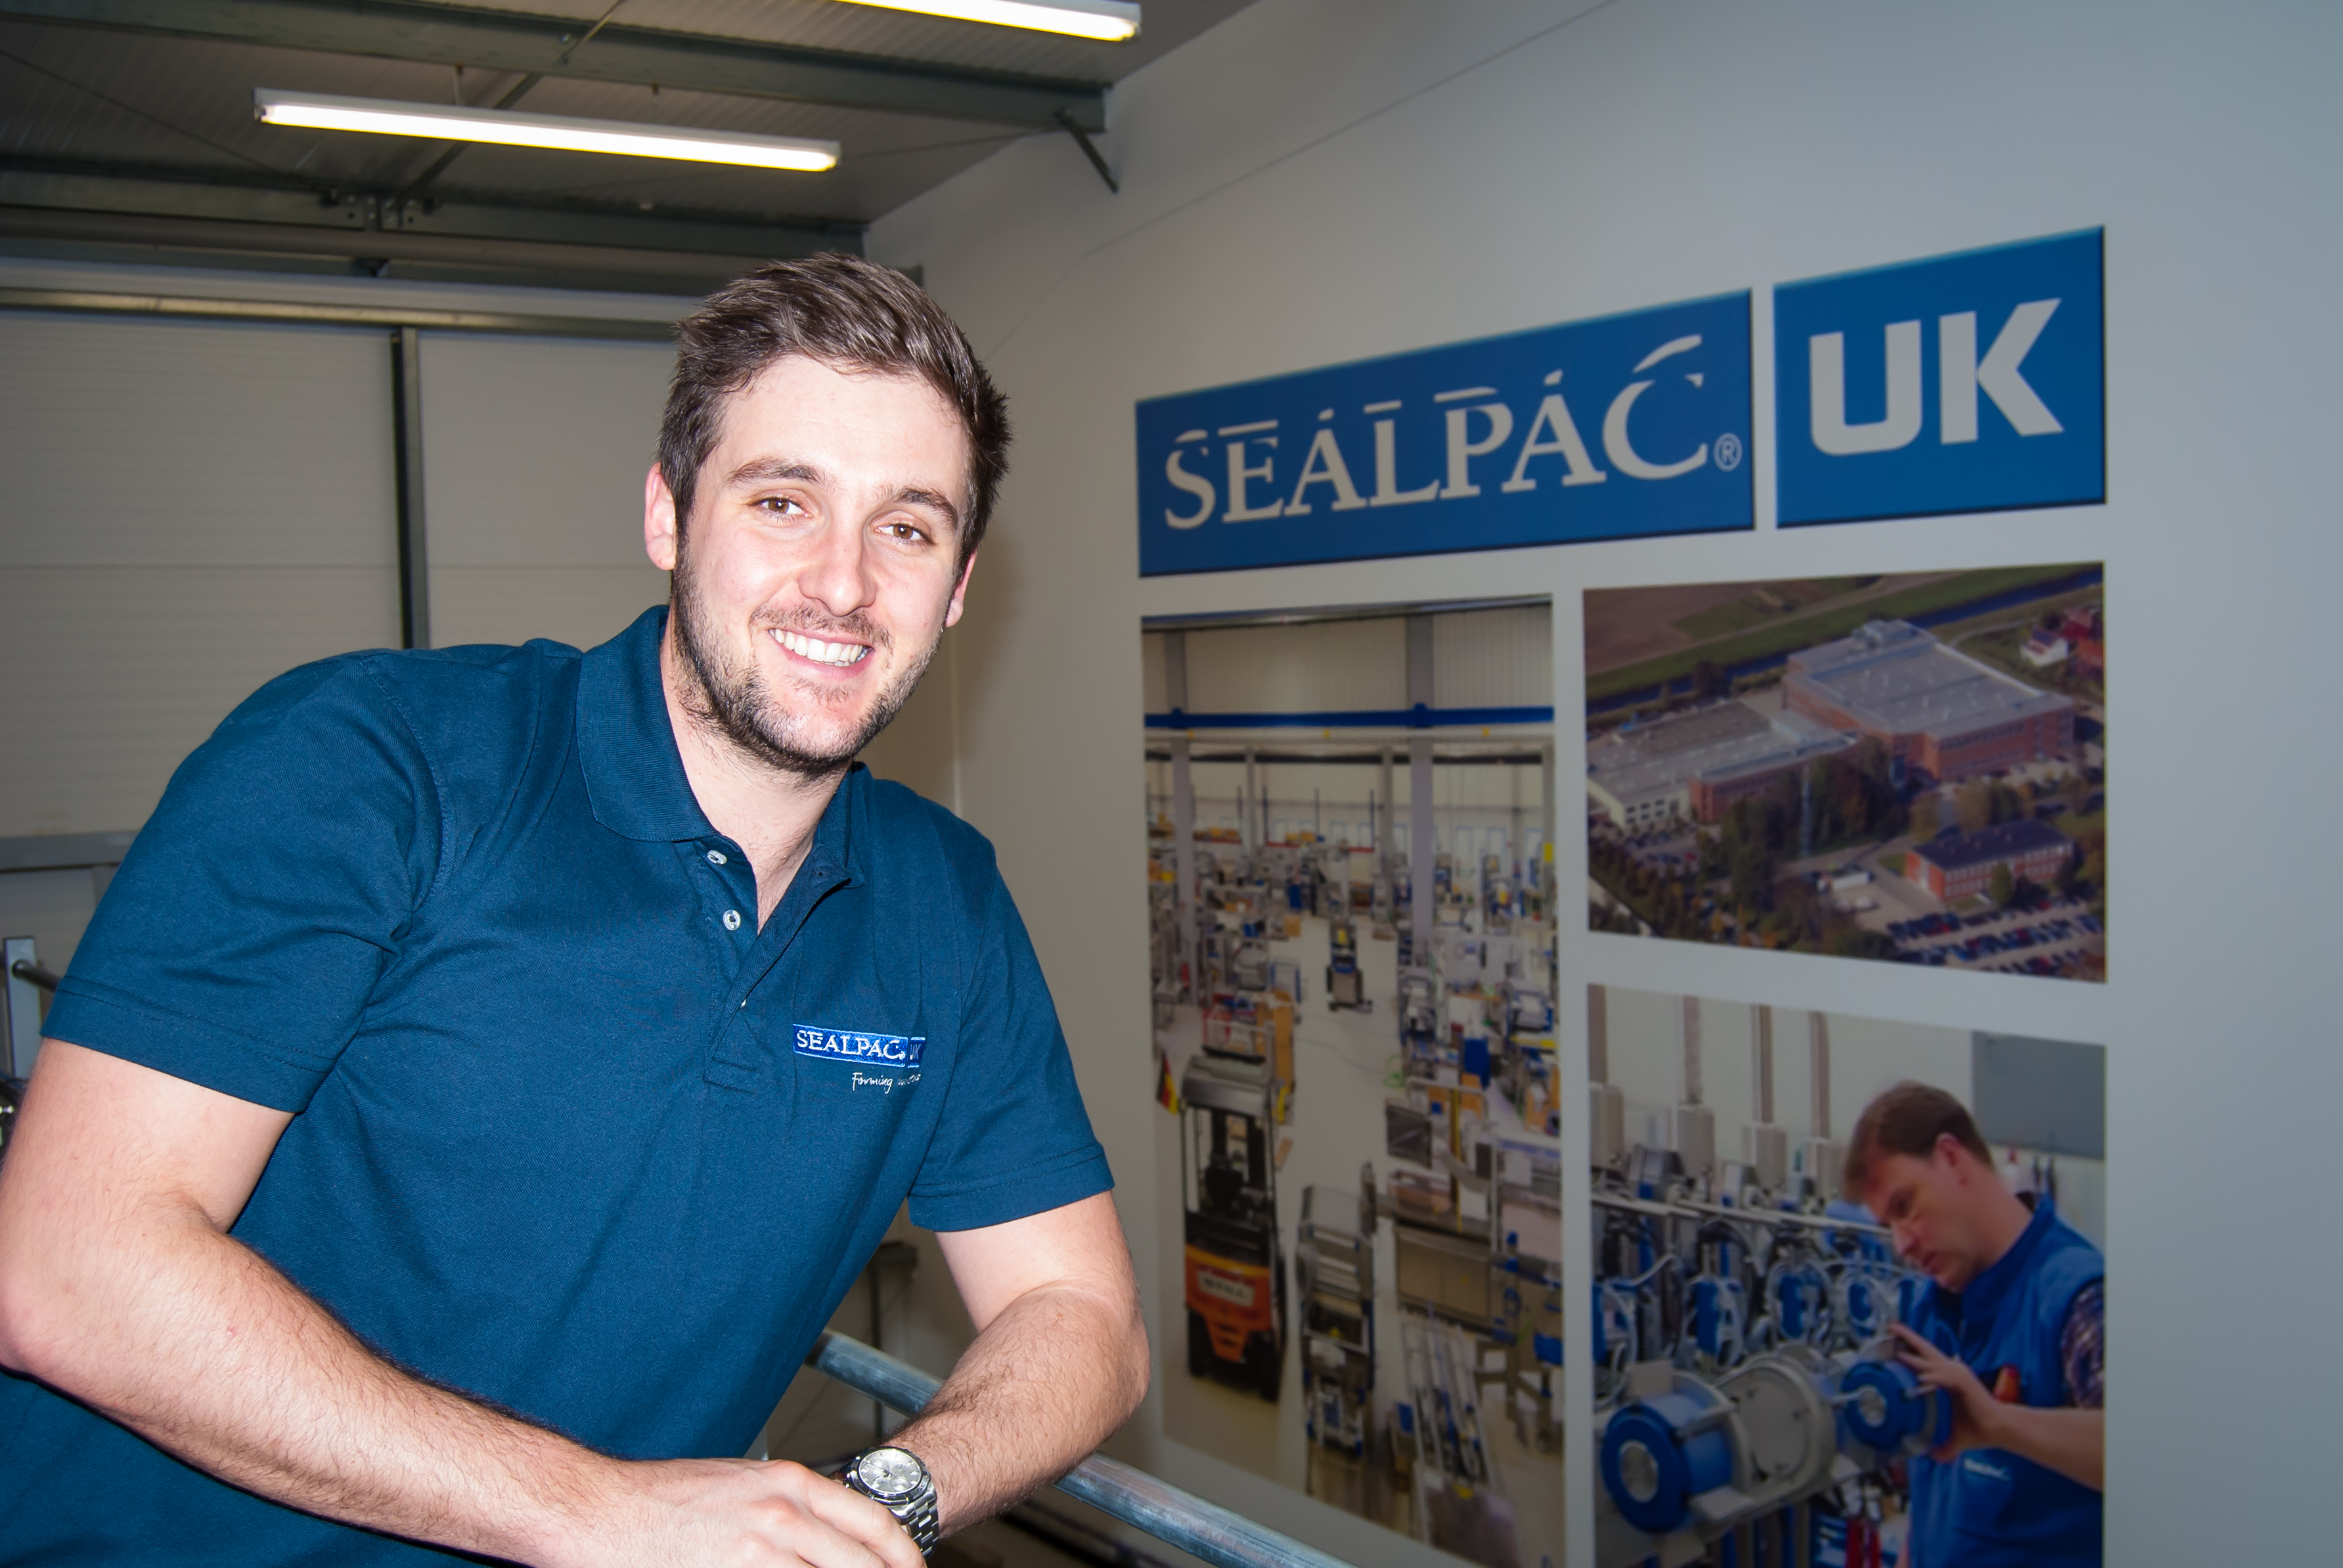 SEALPAC UK welcomes new sales manager